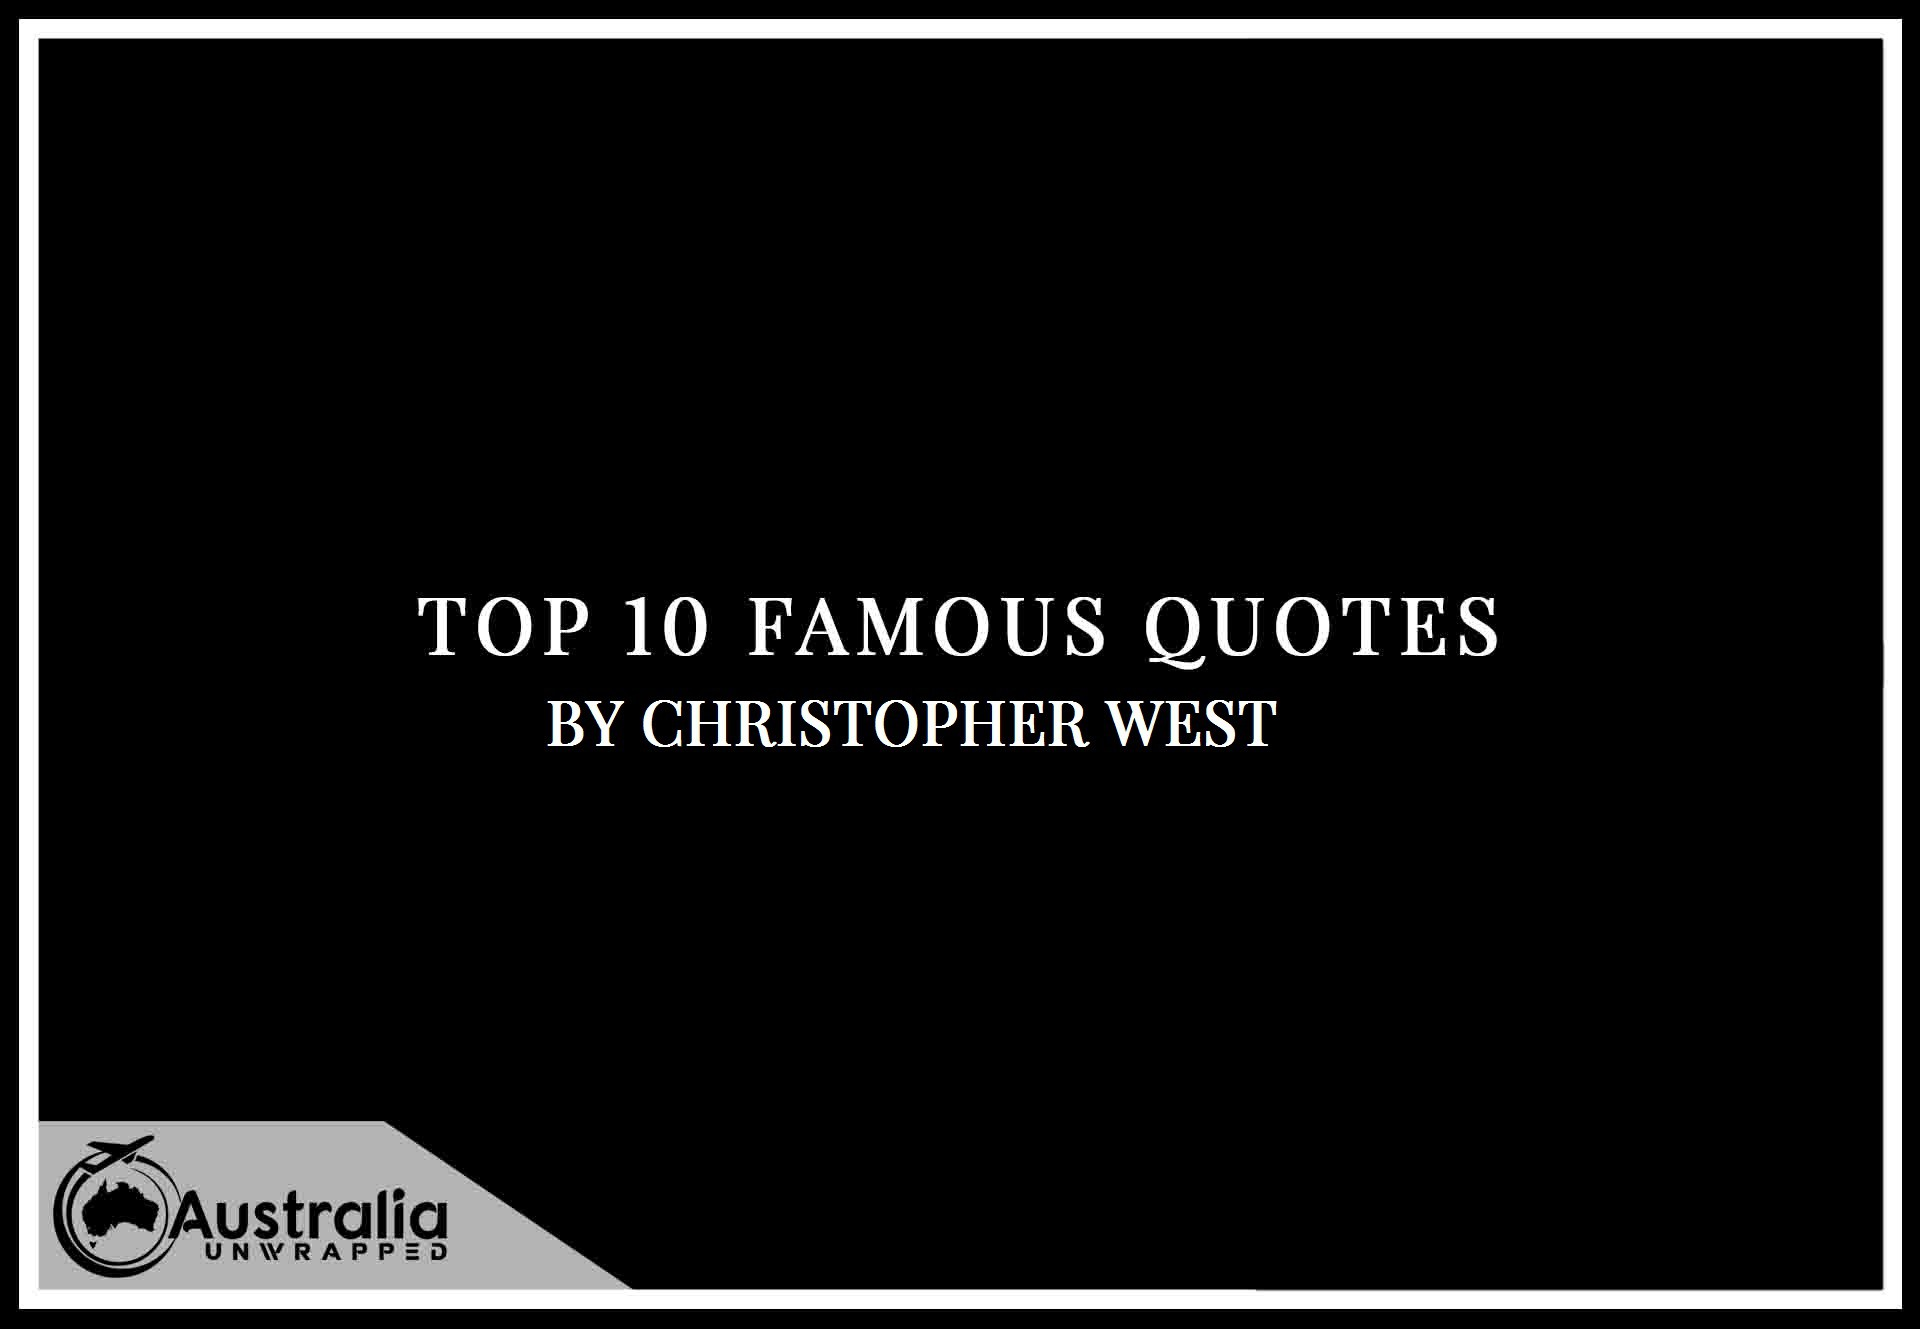 Christopher West's Top 10 Popular and Famous Quotes